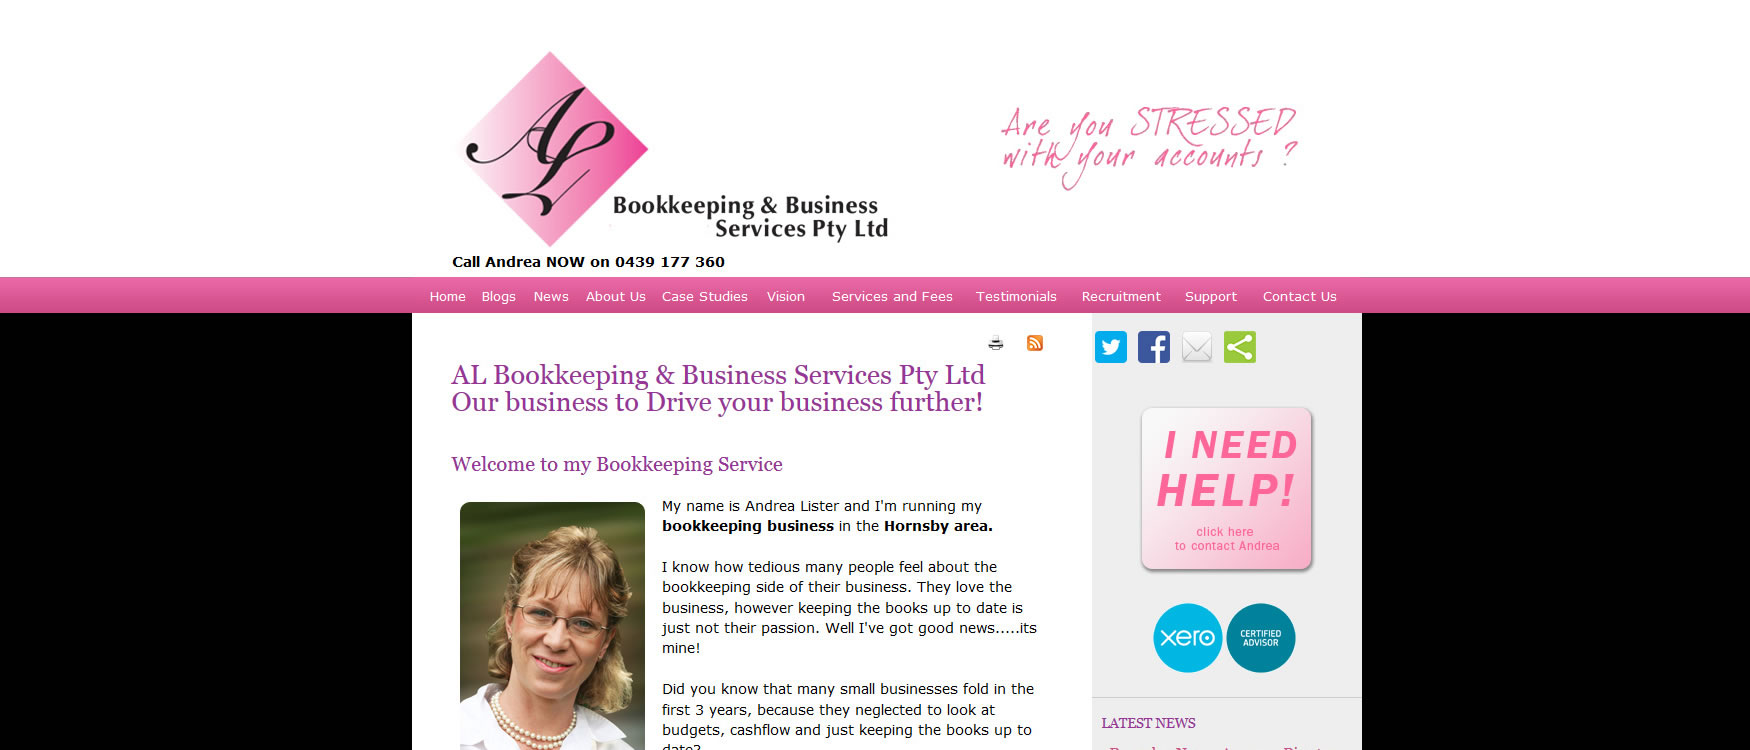 AL Bookkeeping & Business Services